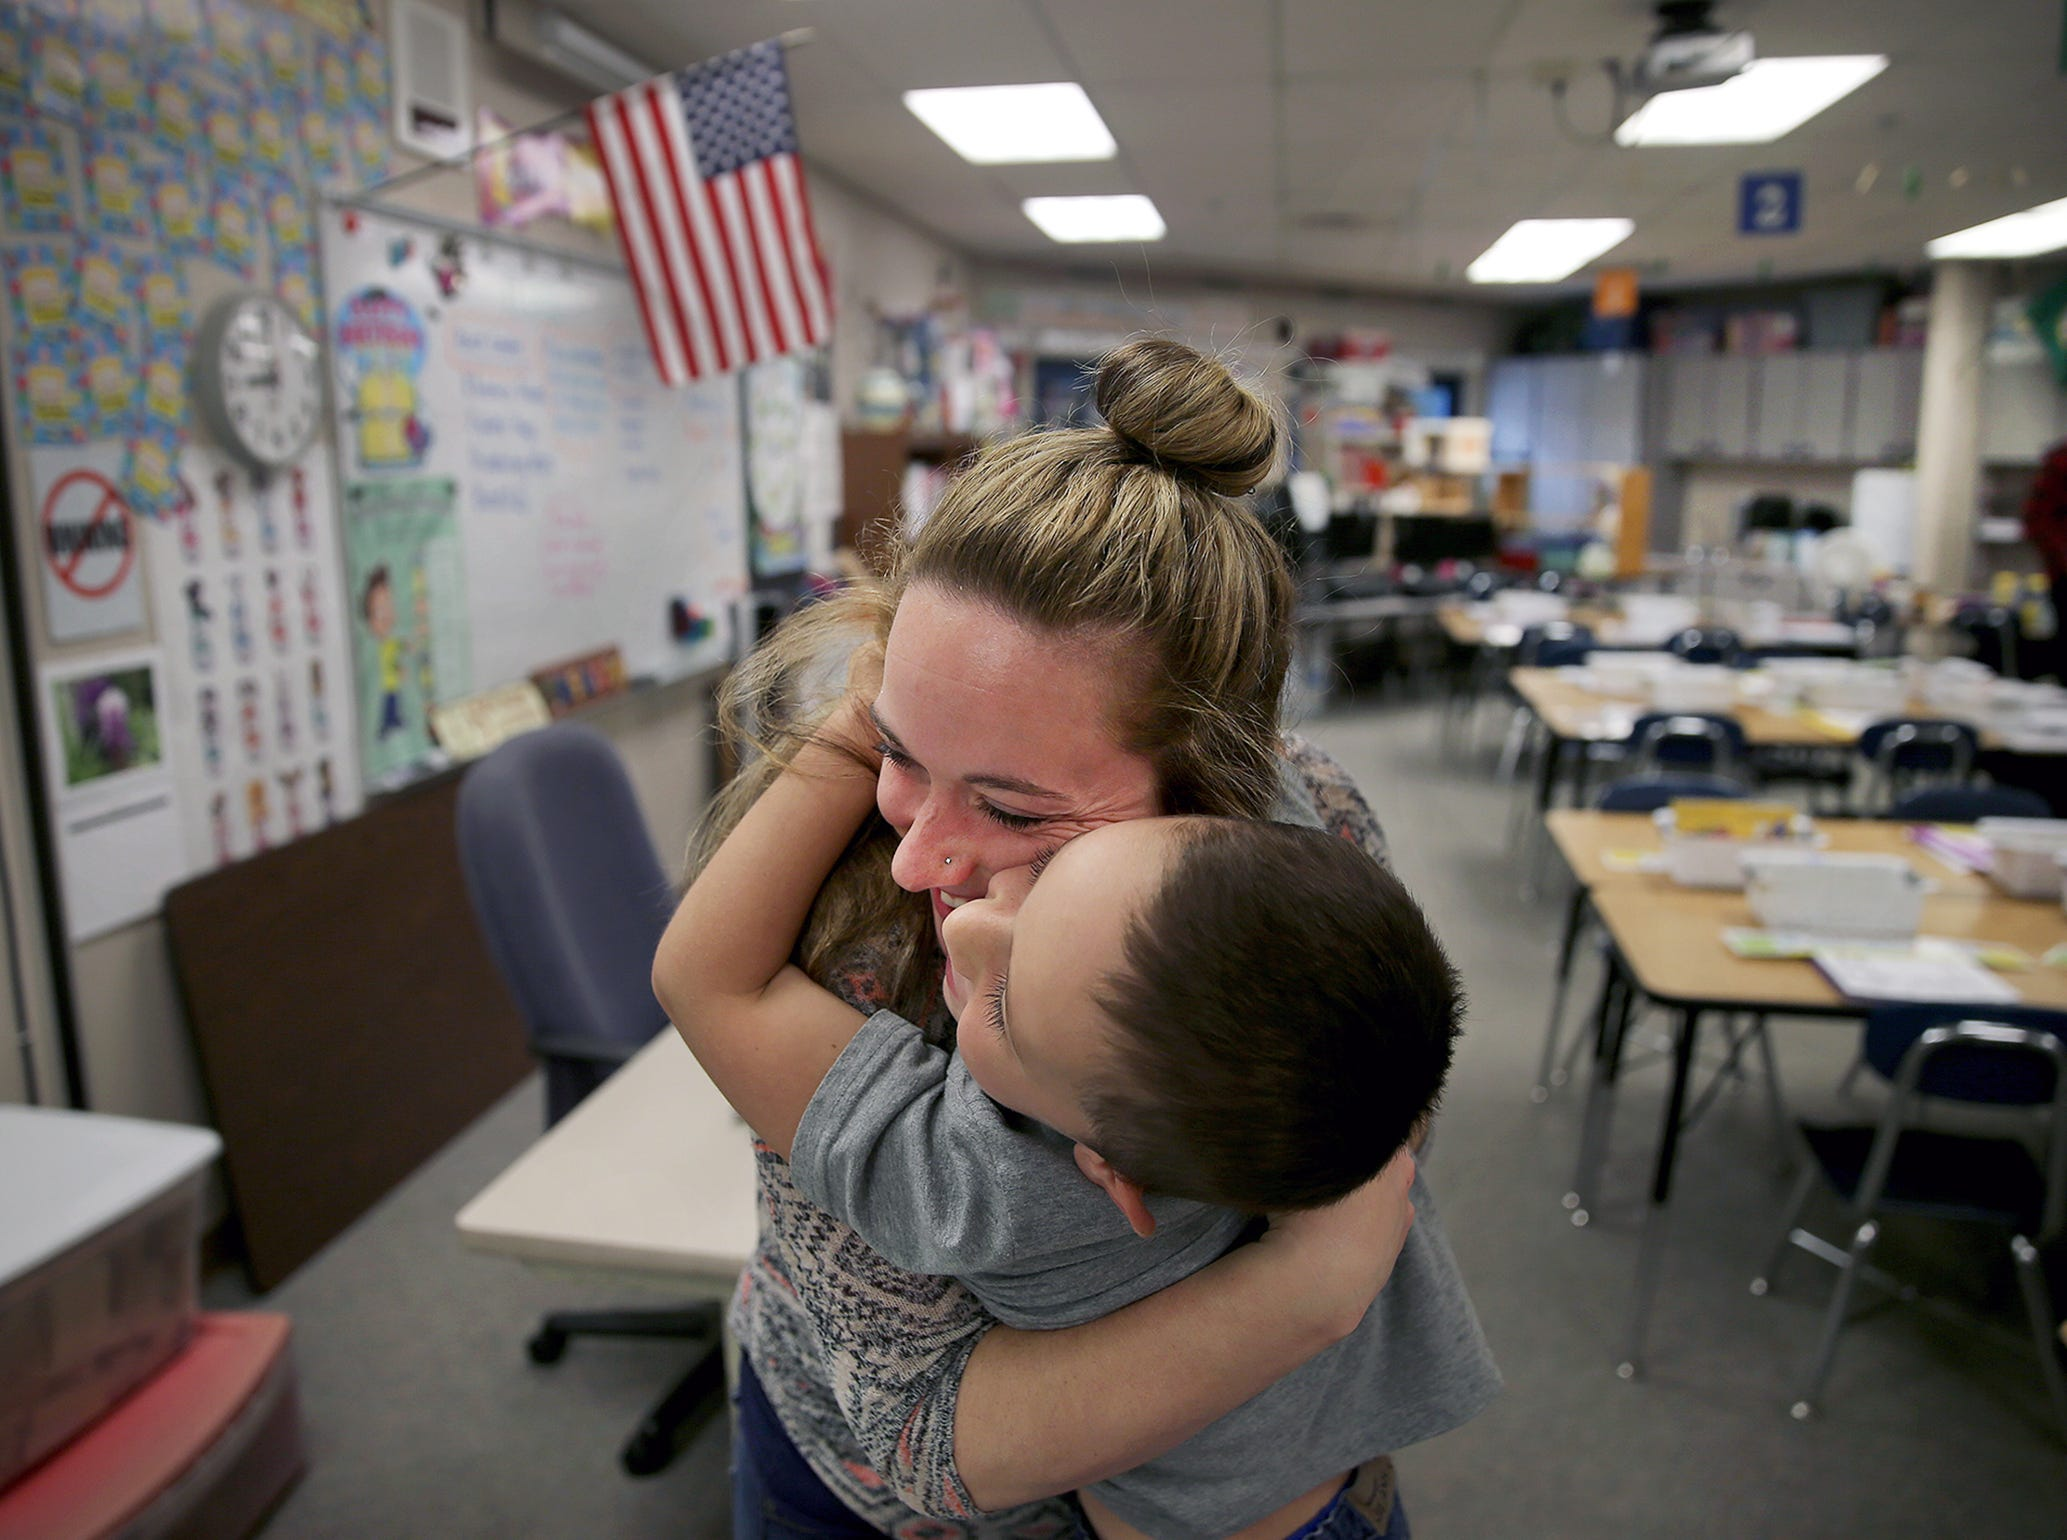 Amanda Rhea hugs her son Carson, 6, as she drops him off for his first day of first grade at Kitsap Lake Elementary on Wednesday. Bremerton School District schools opened Wednesday; the first day of class for other Kitsap and North Mason public schools is Sept. 5.